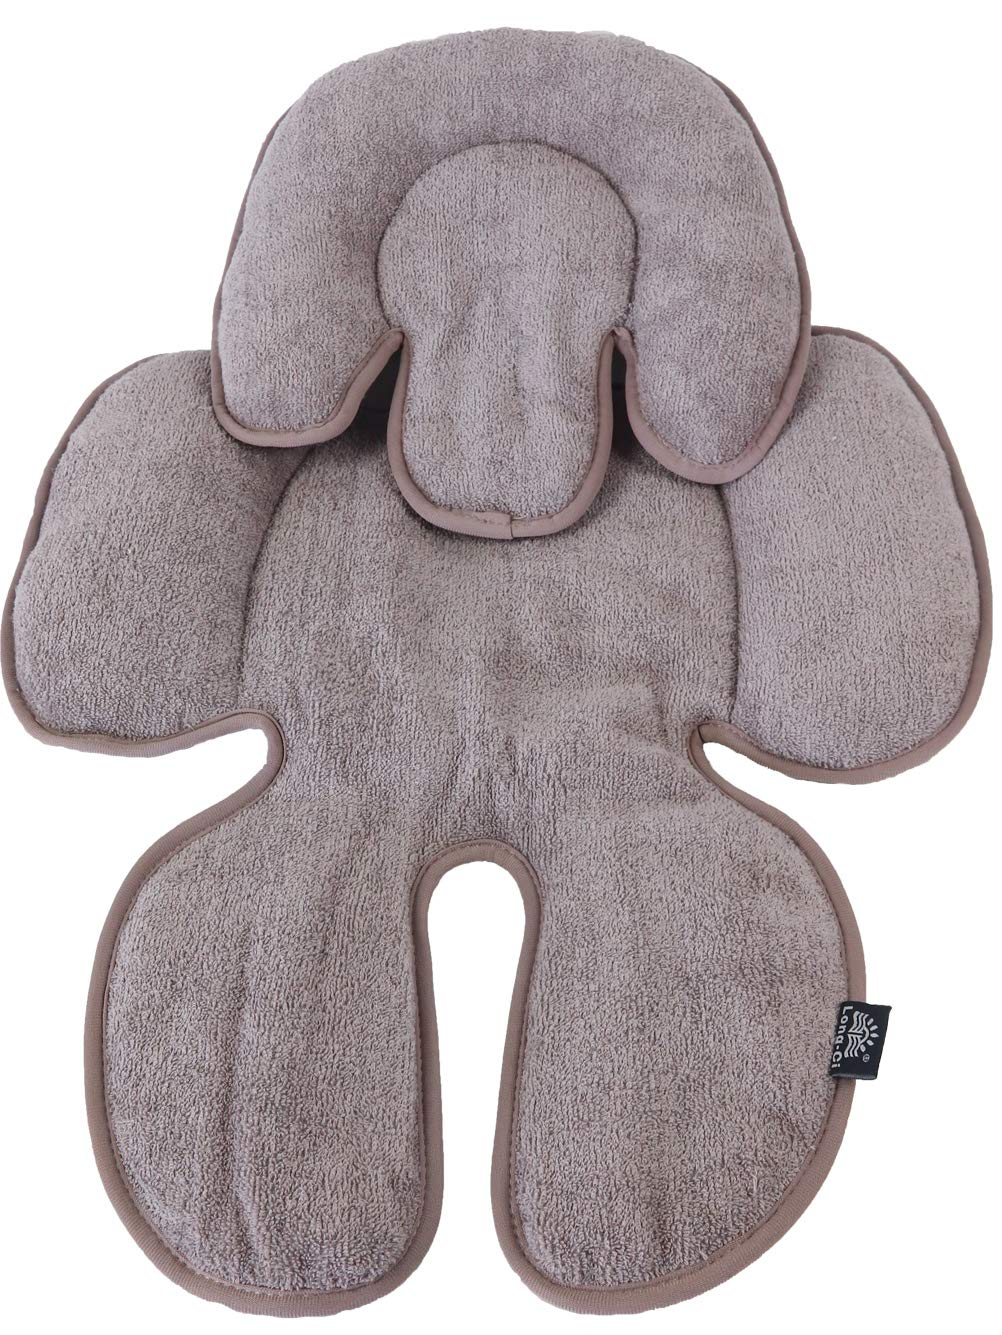 Long-Ci Baby&Toddler Head Support Reversible with Neck Body Pad for Car Seats,Strollers&Bouncers Grey